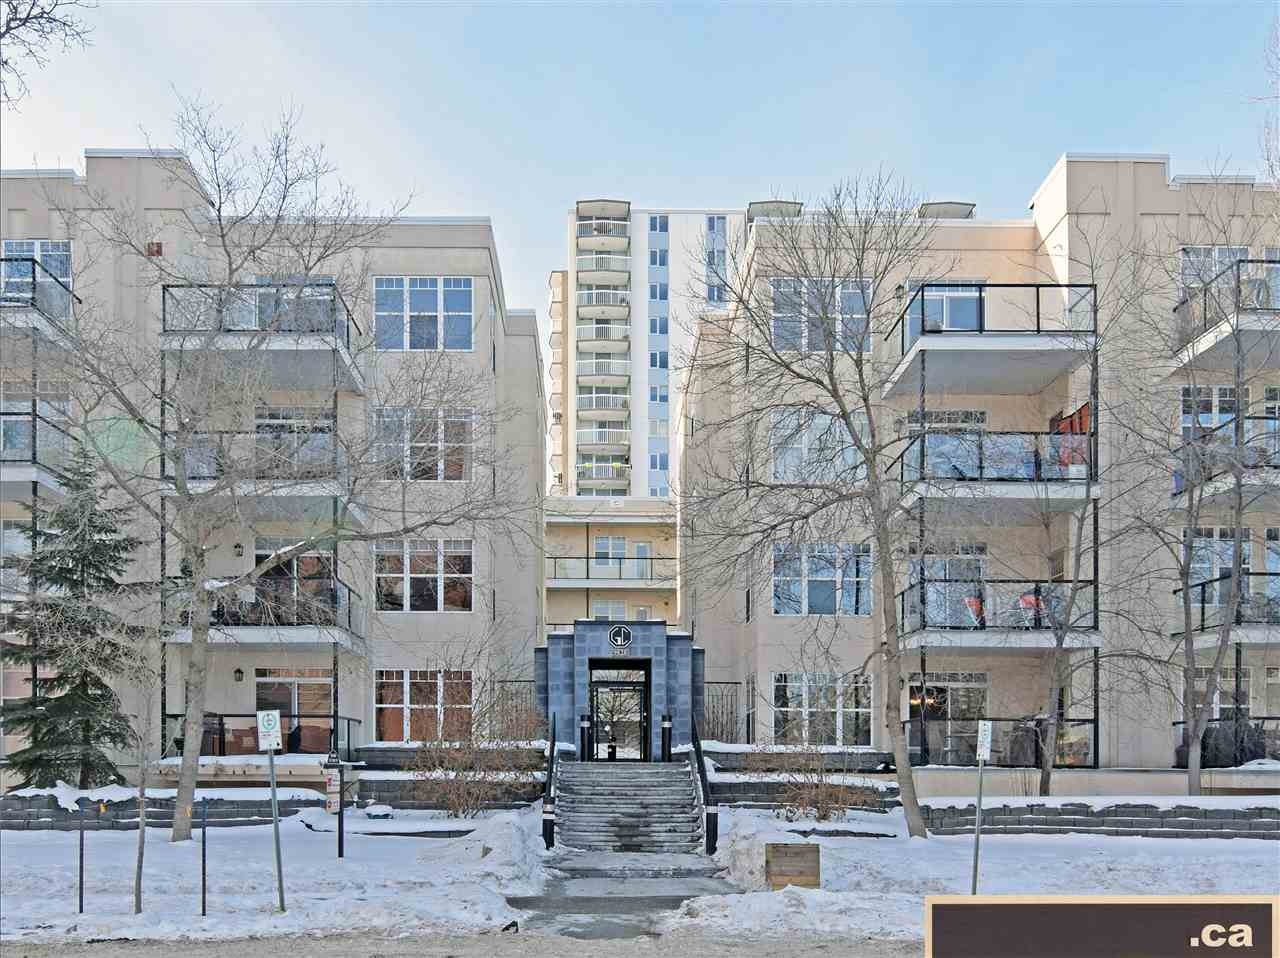 PRESENTING GRANDIN COURT: A TRENDY 2001-BUILT COMPLEX IN OLIVER WITHIN VERY CLOSE PROXIMITY TO EDMONTON'S PICTURESQUE RIVER VALLEY! Excellent condition main level unit features open concept living / dining / kitchen areas; hardwood flooring and new painting throughout; new countertops; electric fireplace; bright and open master bedroom with TV wall mount and walk-in closet; sizeable 4-piece main bath; and nice 11' x 9' covered balcony (E / SE exposure) with stainless steel barbecue and natural gas hookup. Unit comes complete with in-suite laundry; air conditioning; fire sprinklers; alarm system; and titled underground heated parking with storage cage. Prime Central Location within walking or biking distance to Grandin LRT Station; Jasper Avenue; Downtown; MacEwan University; Rogers Place; City Hall; High Level Bridge; Victoria Park; River Valley Road; Kinsmen; Victoria GC and Royal Mayfair GC; and University of Alberta. Flexible Possession!!